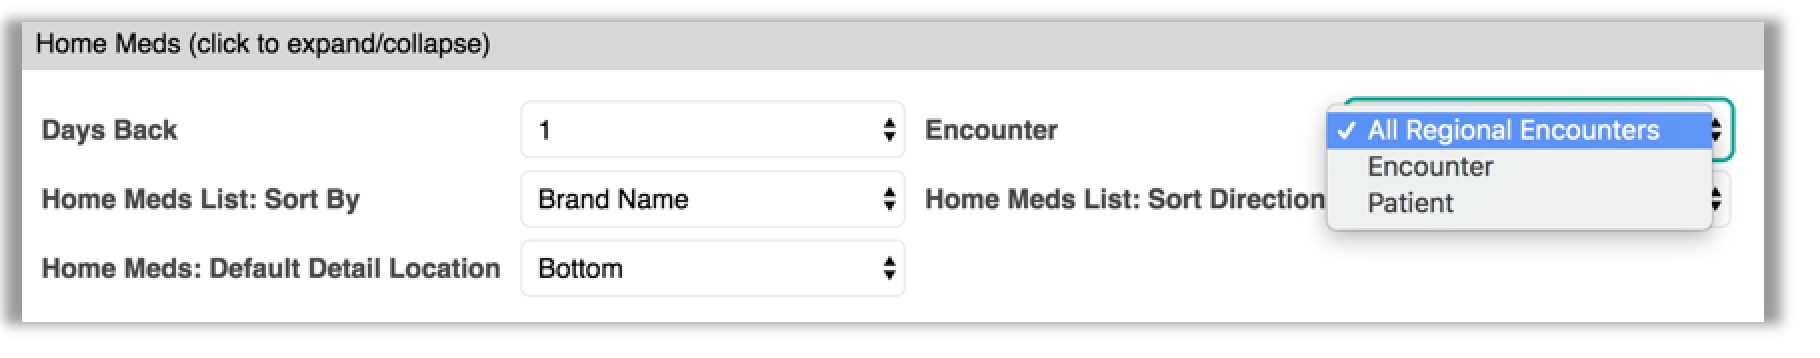 image of how to update preferences for home meds